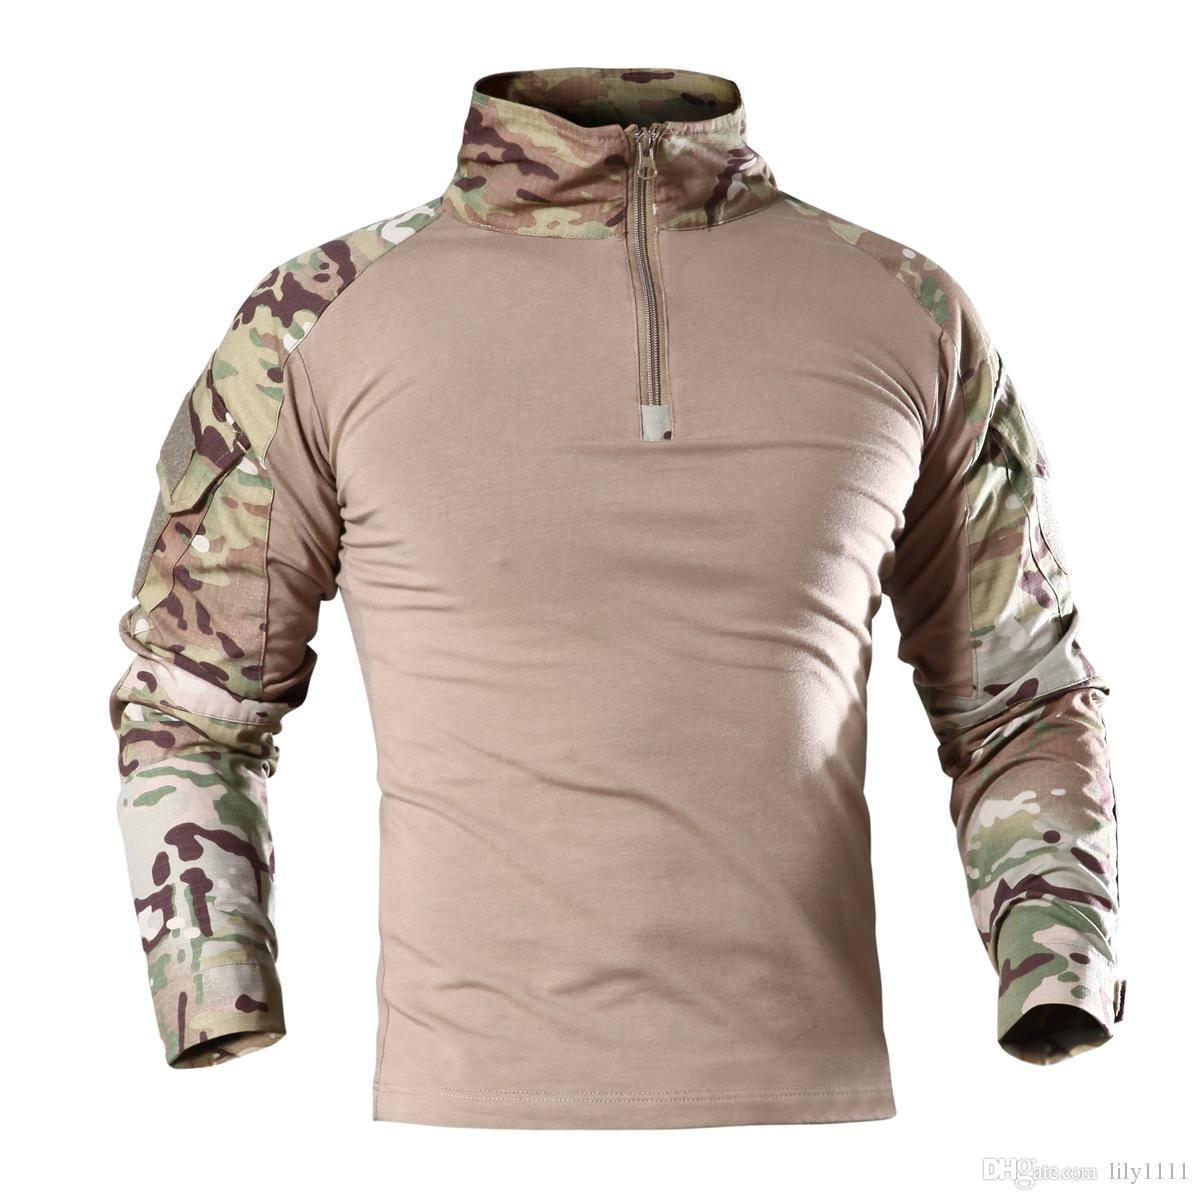 Shanghai Story Top Quality Brand Camouflage Long Sleeve Frog Suit Men Tops Tactical Tool Cargo t Shirt Army Military Combat Tee for men